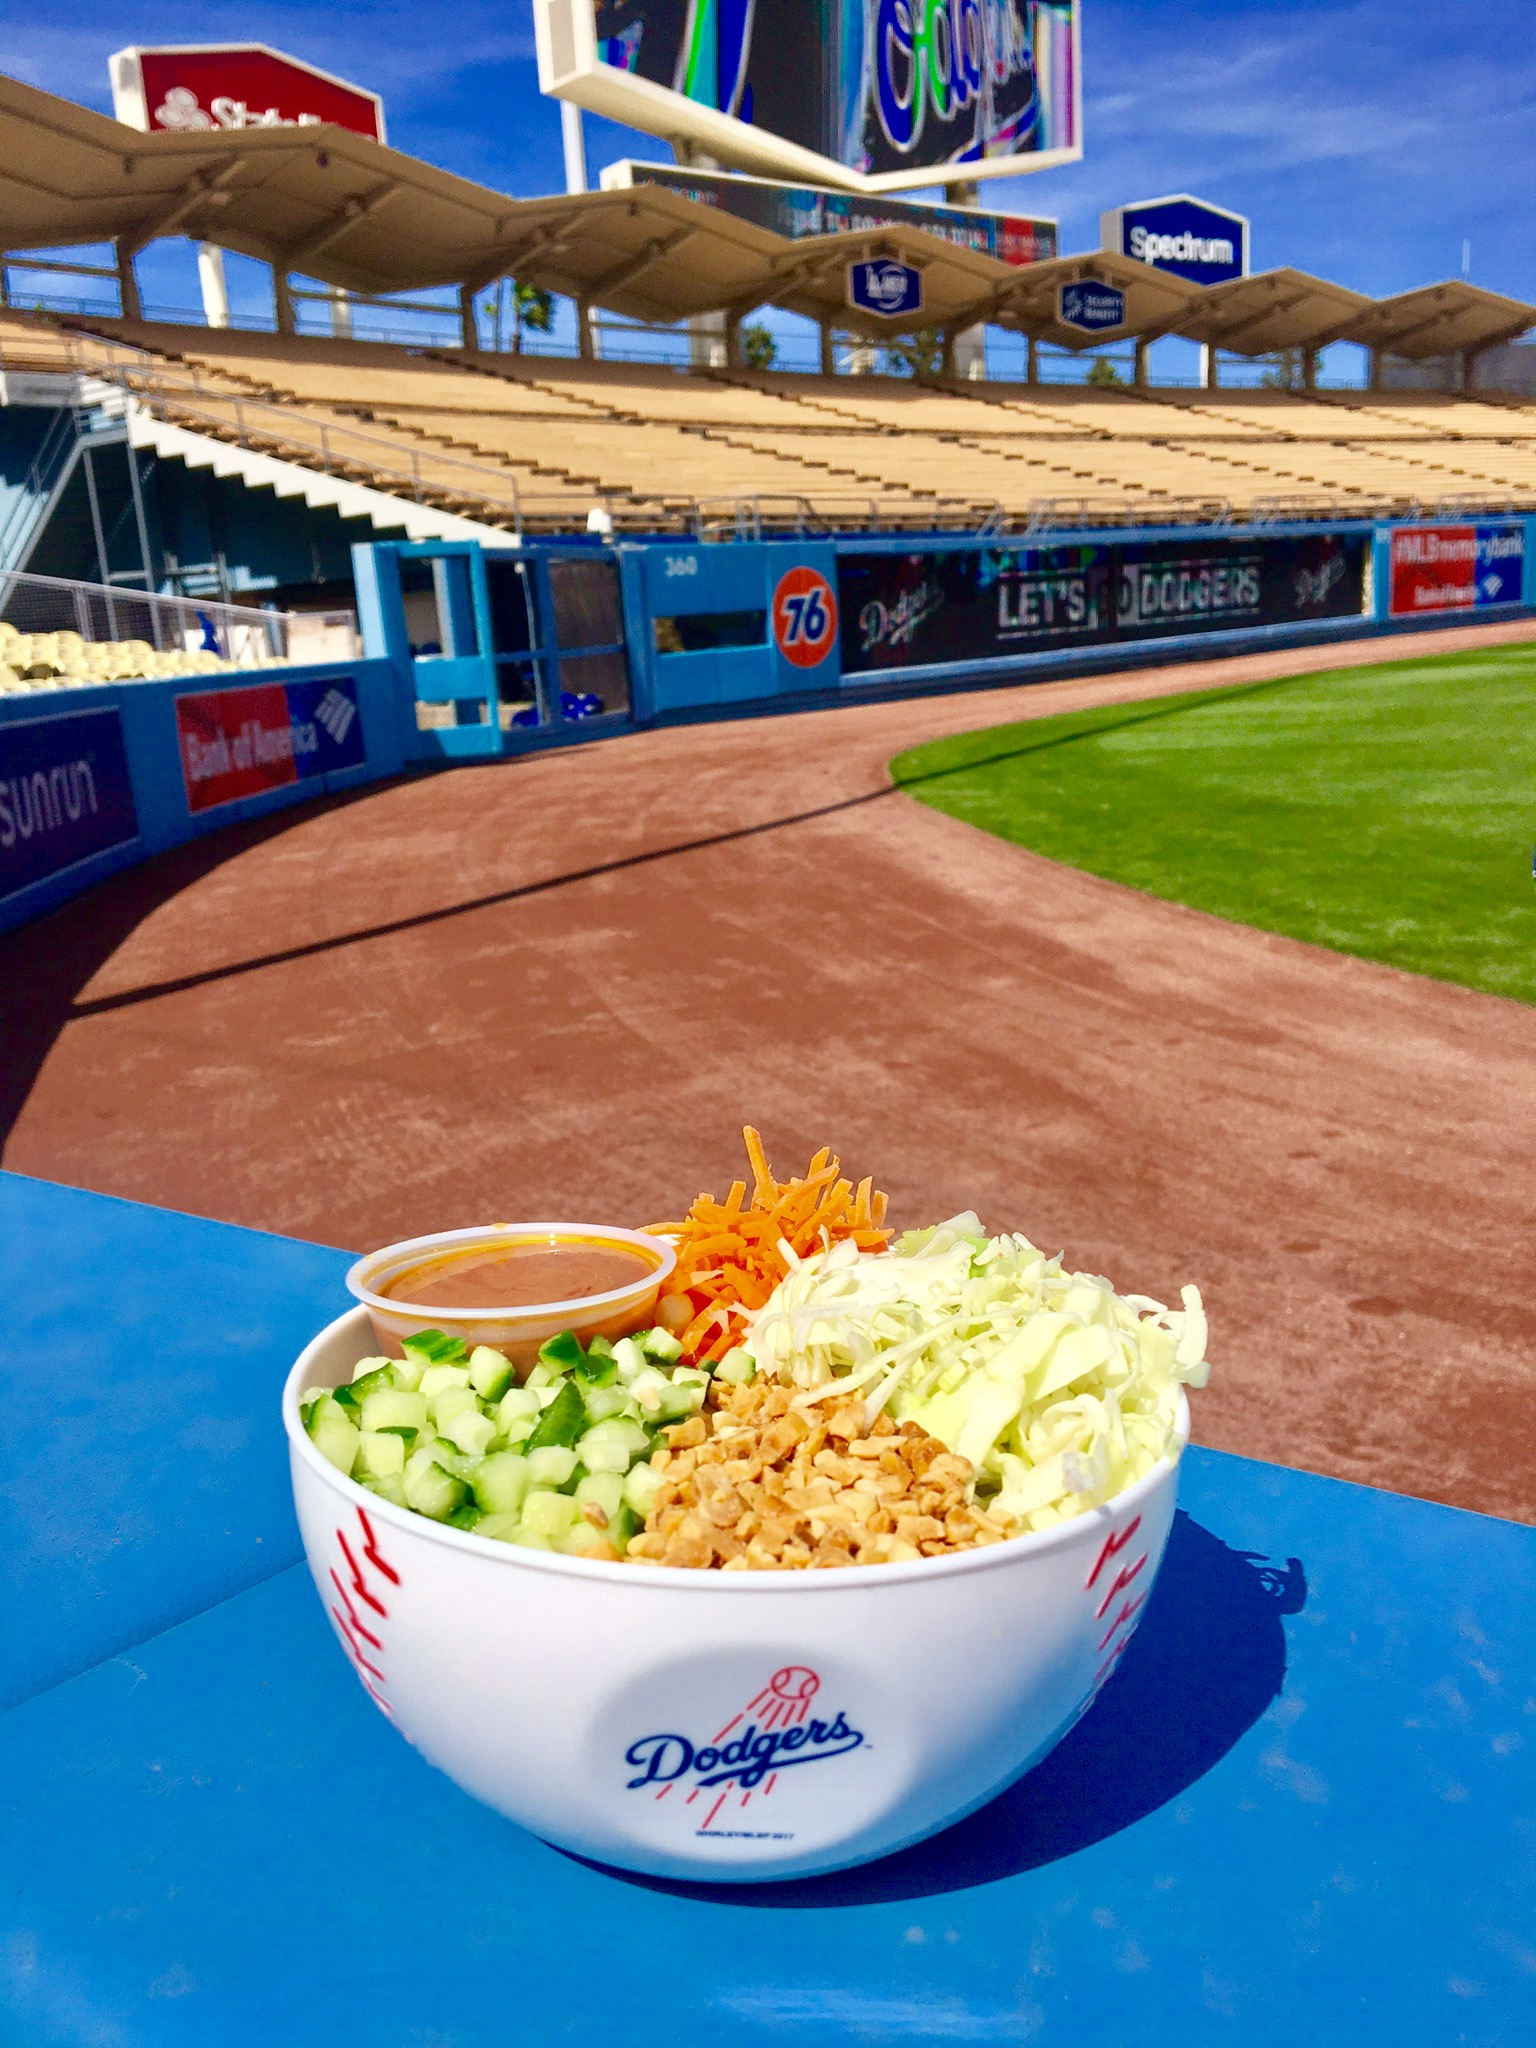 VEGAN NOODLE BOWL    Vietnamese bean thread noodle, nappa cabbage, shredded carrots, diced cucumber, peanuts, diced jalapeño, peanut sauce located at   Base Bowls on Field level (section 45).